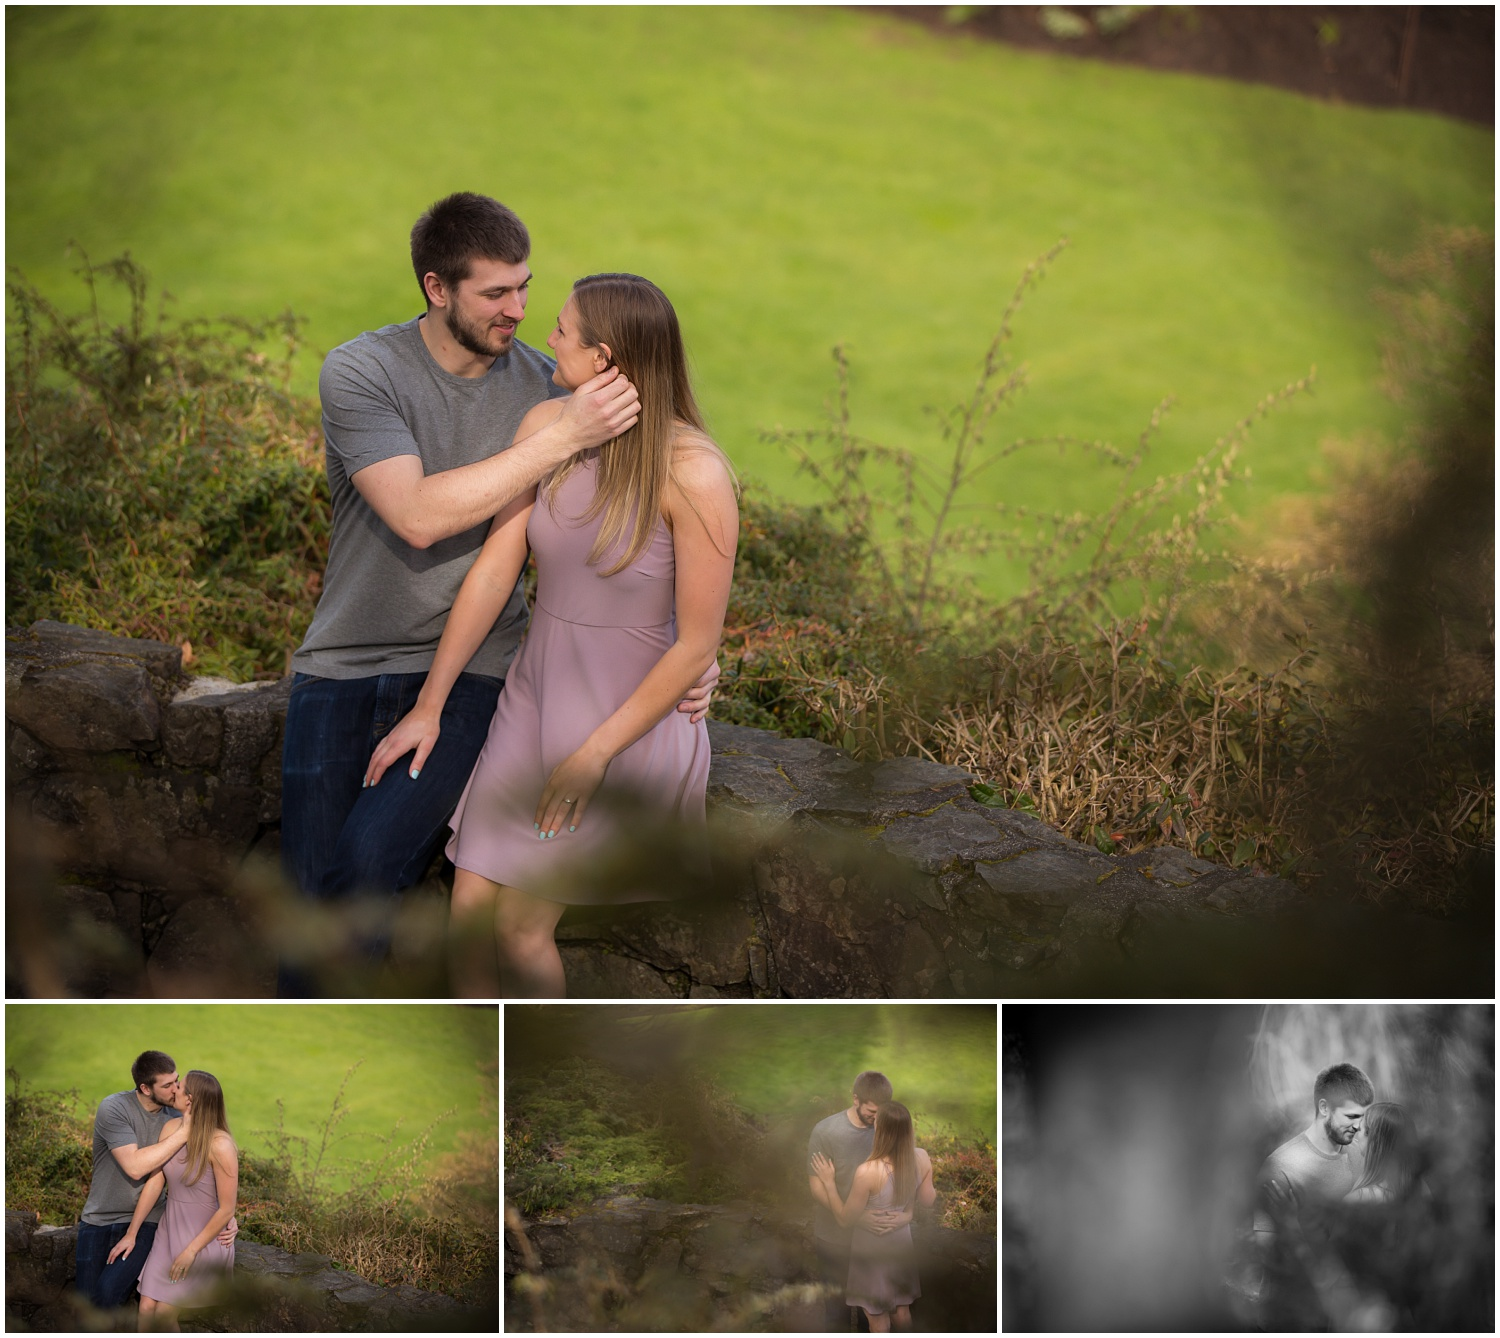 Amazing Day Photography - Cherry Blossom Engagement Session - Queen Elizabeth Park Engagement Session - Vancouver Engagement Photographer  (4).jpg